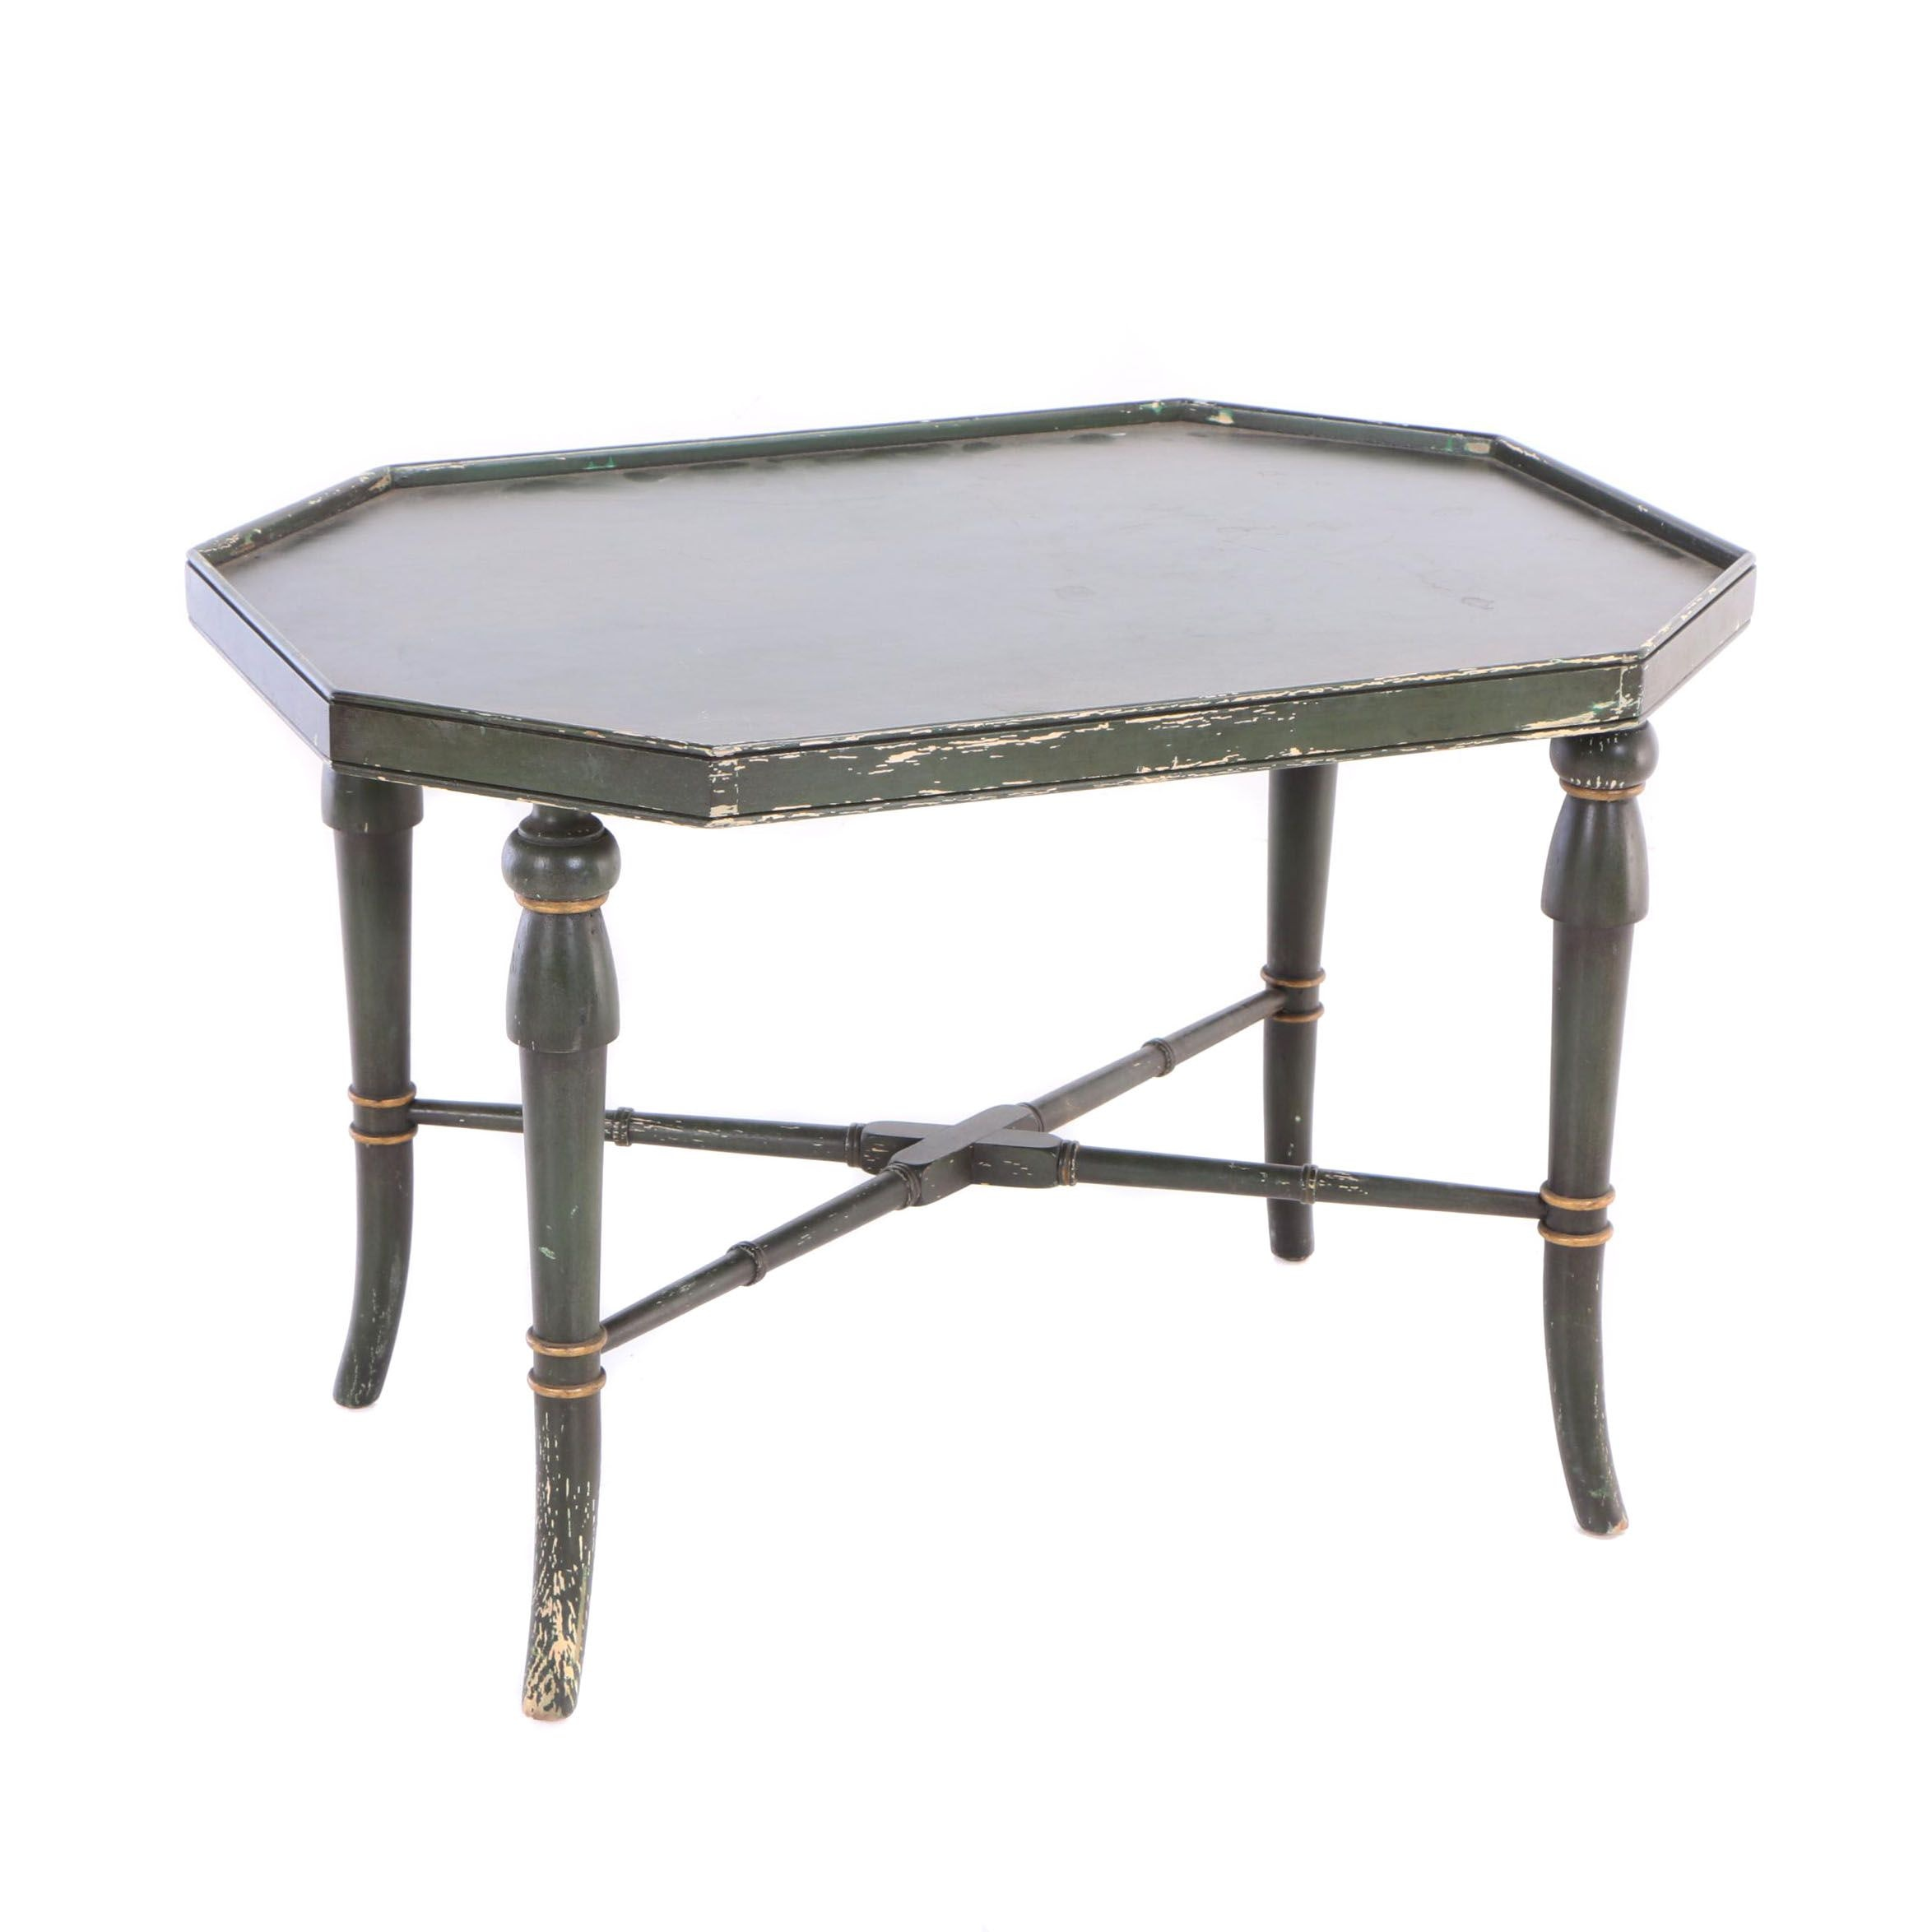 Green-Painted and Parcel-Gilt Side Table or Tray Stand, Late 20th Century